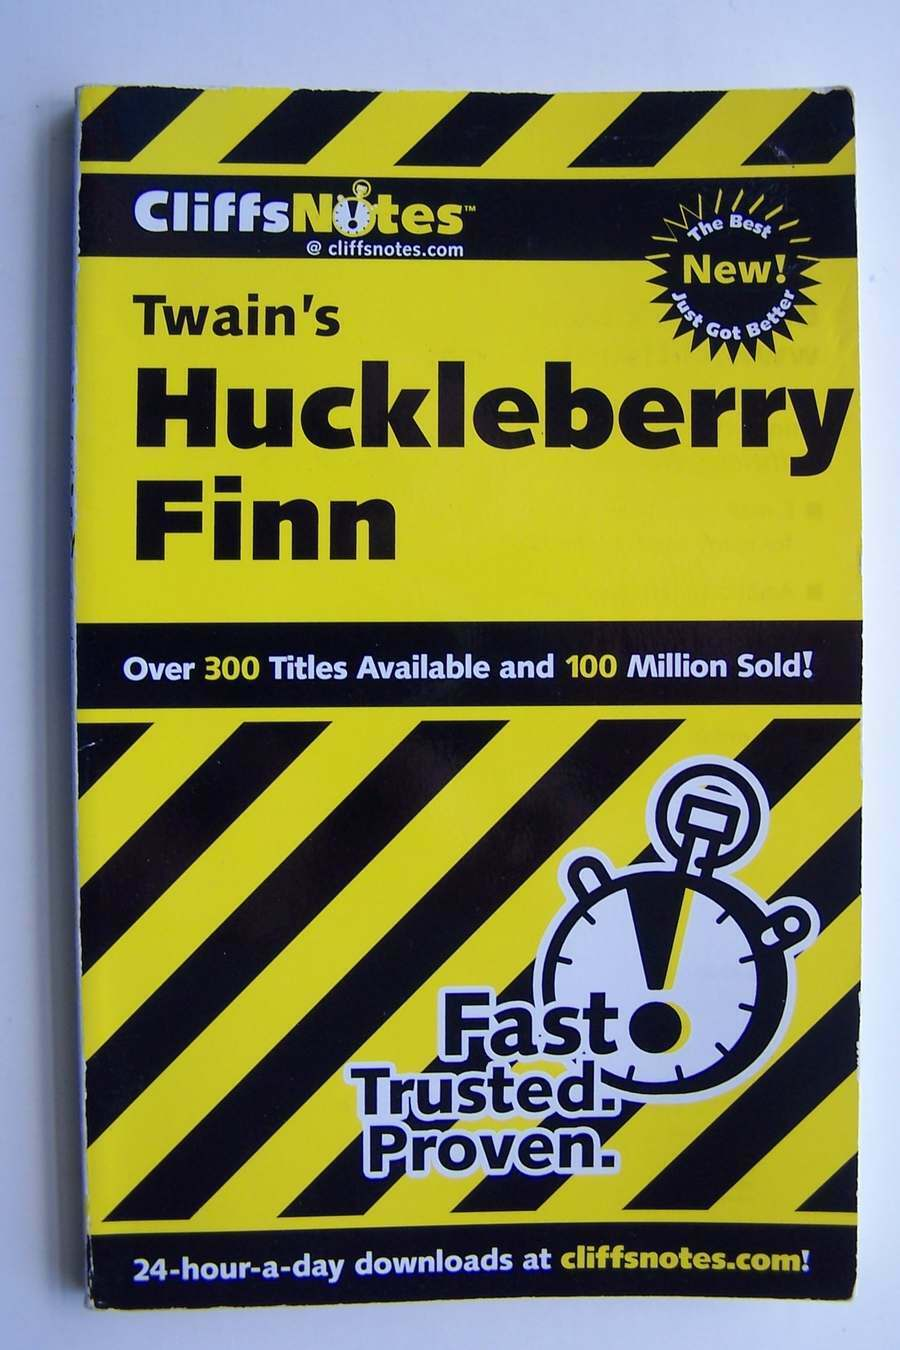 CliffsNotes on Twain's The Adventures of Huckleberry Fi